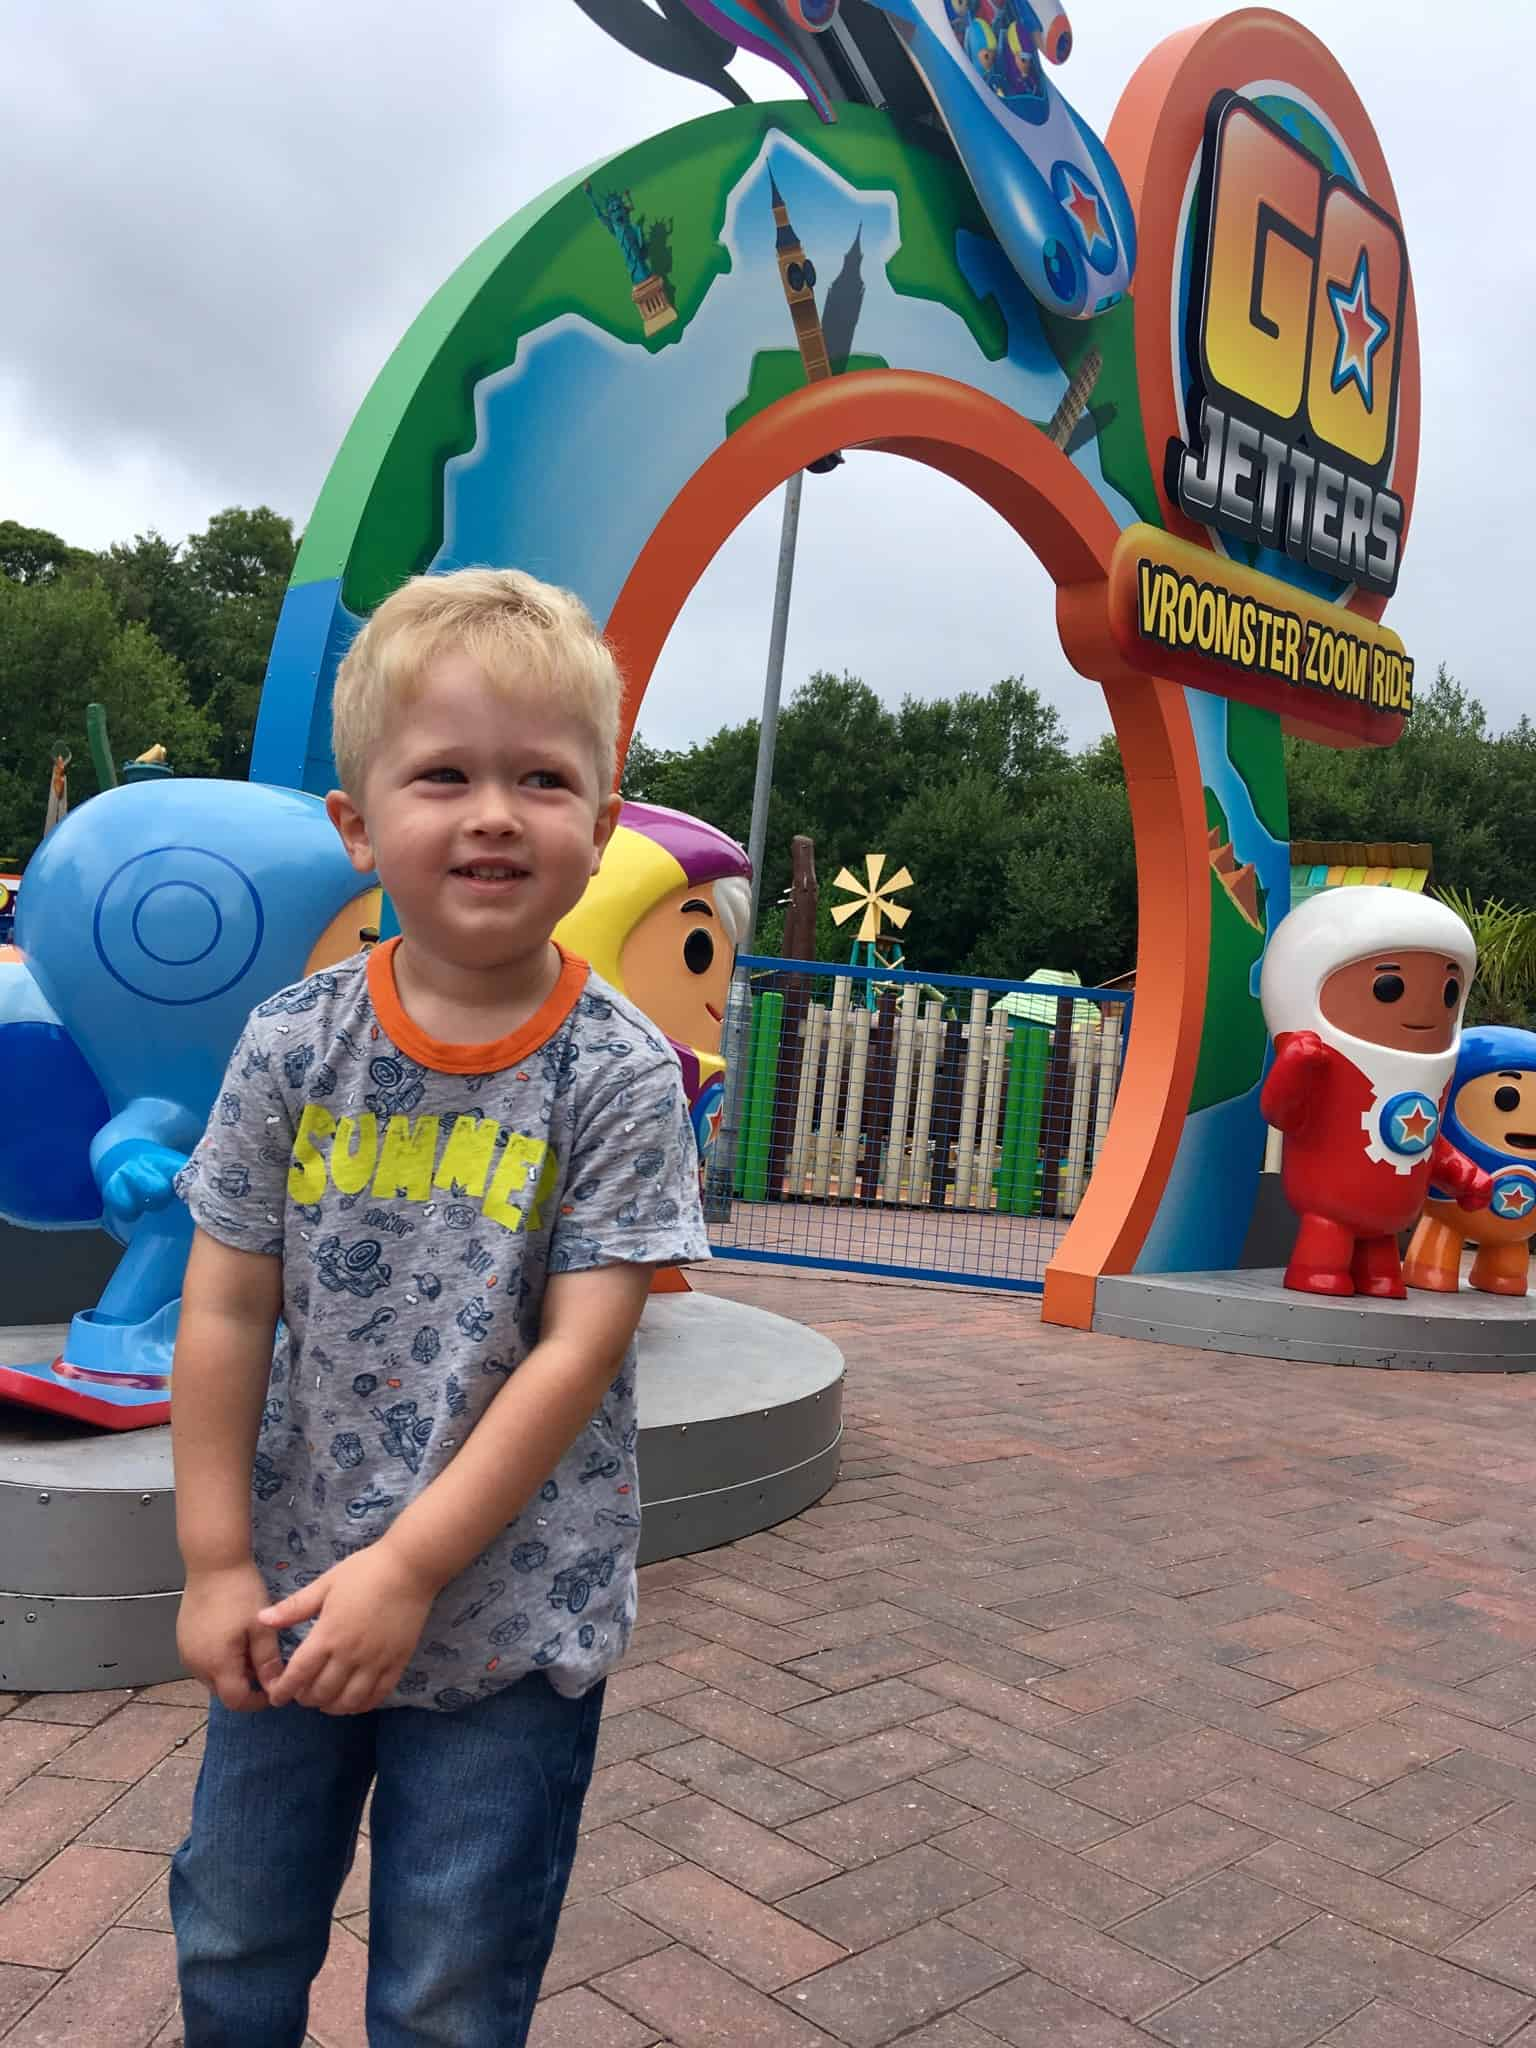 CBeebies Land, Alton Towers review. Lucas stood outside the octonauts ride entrance smiling